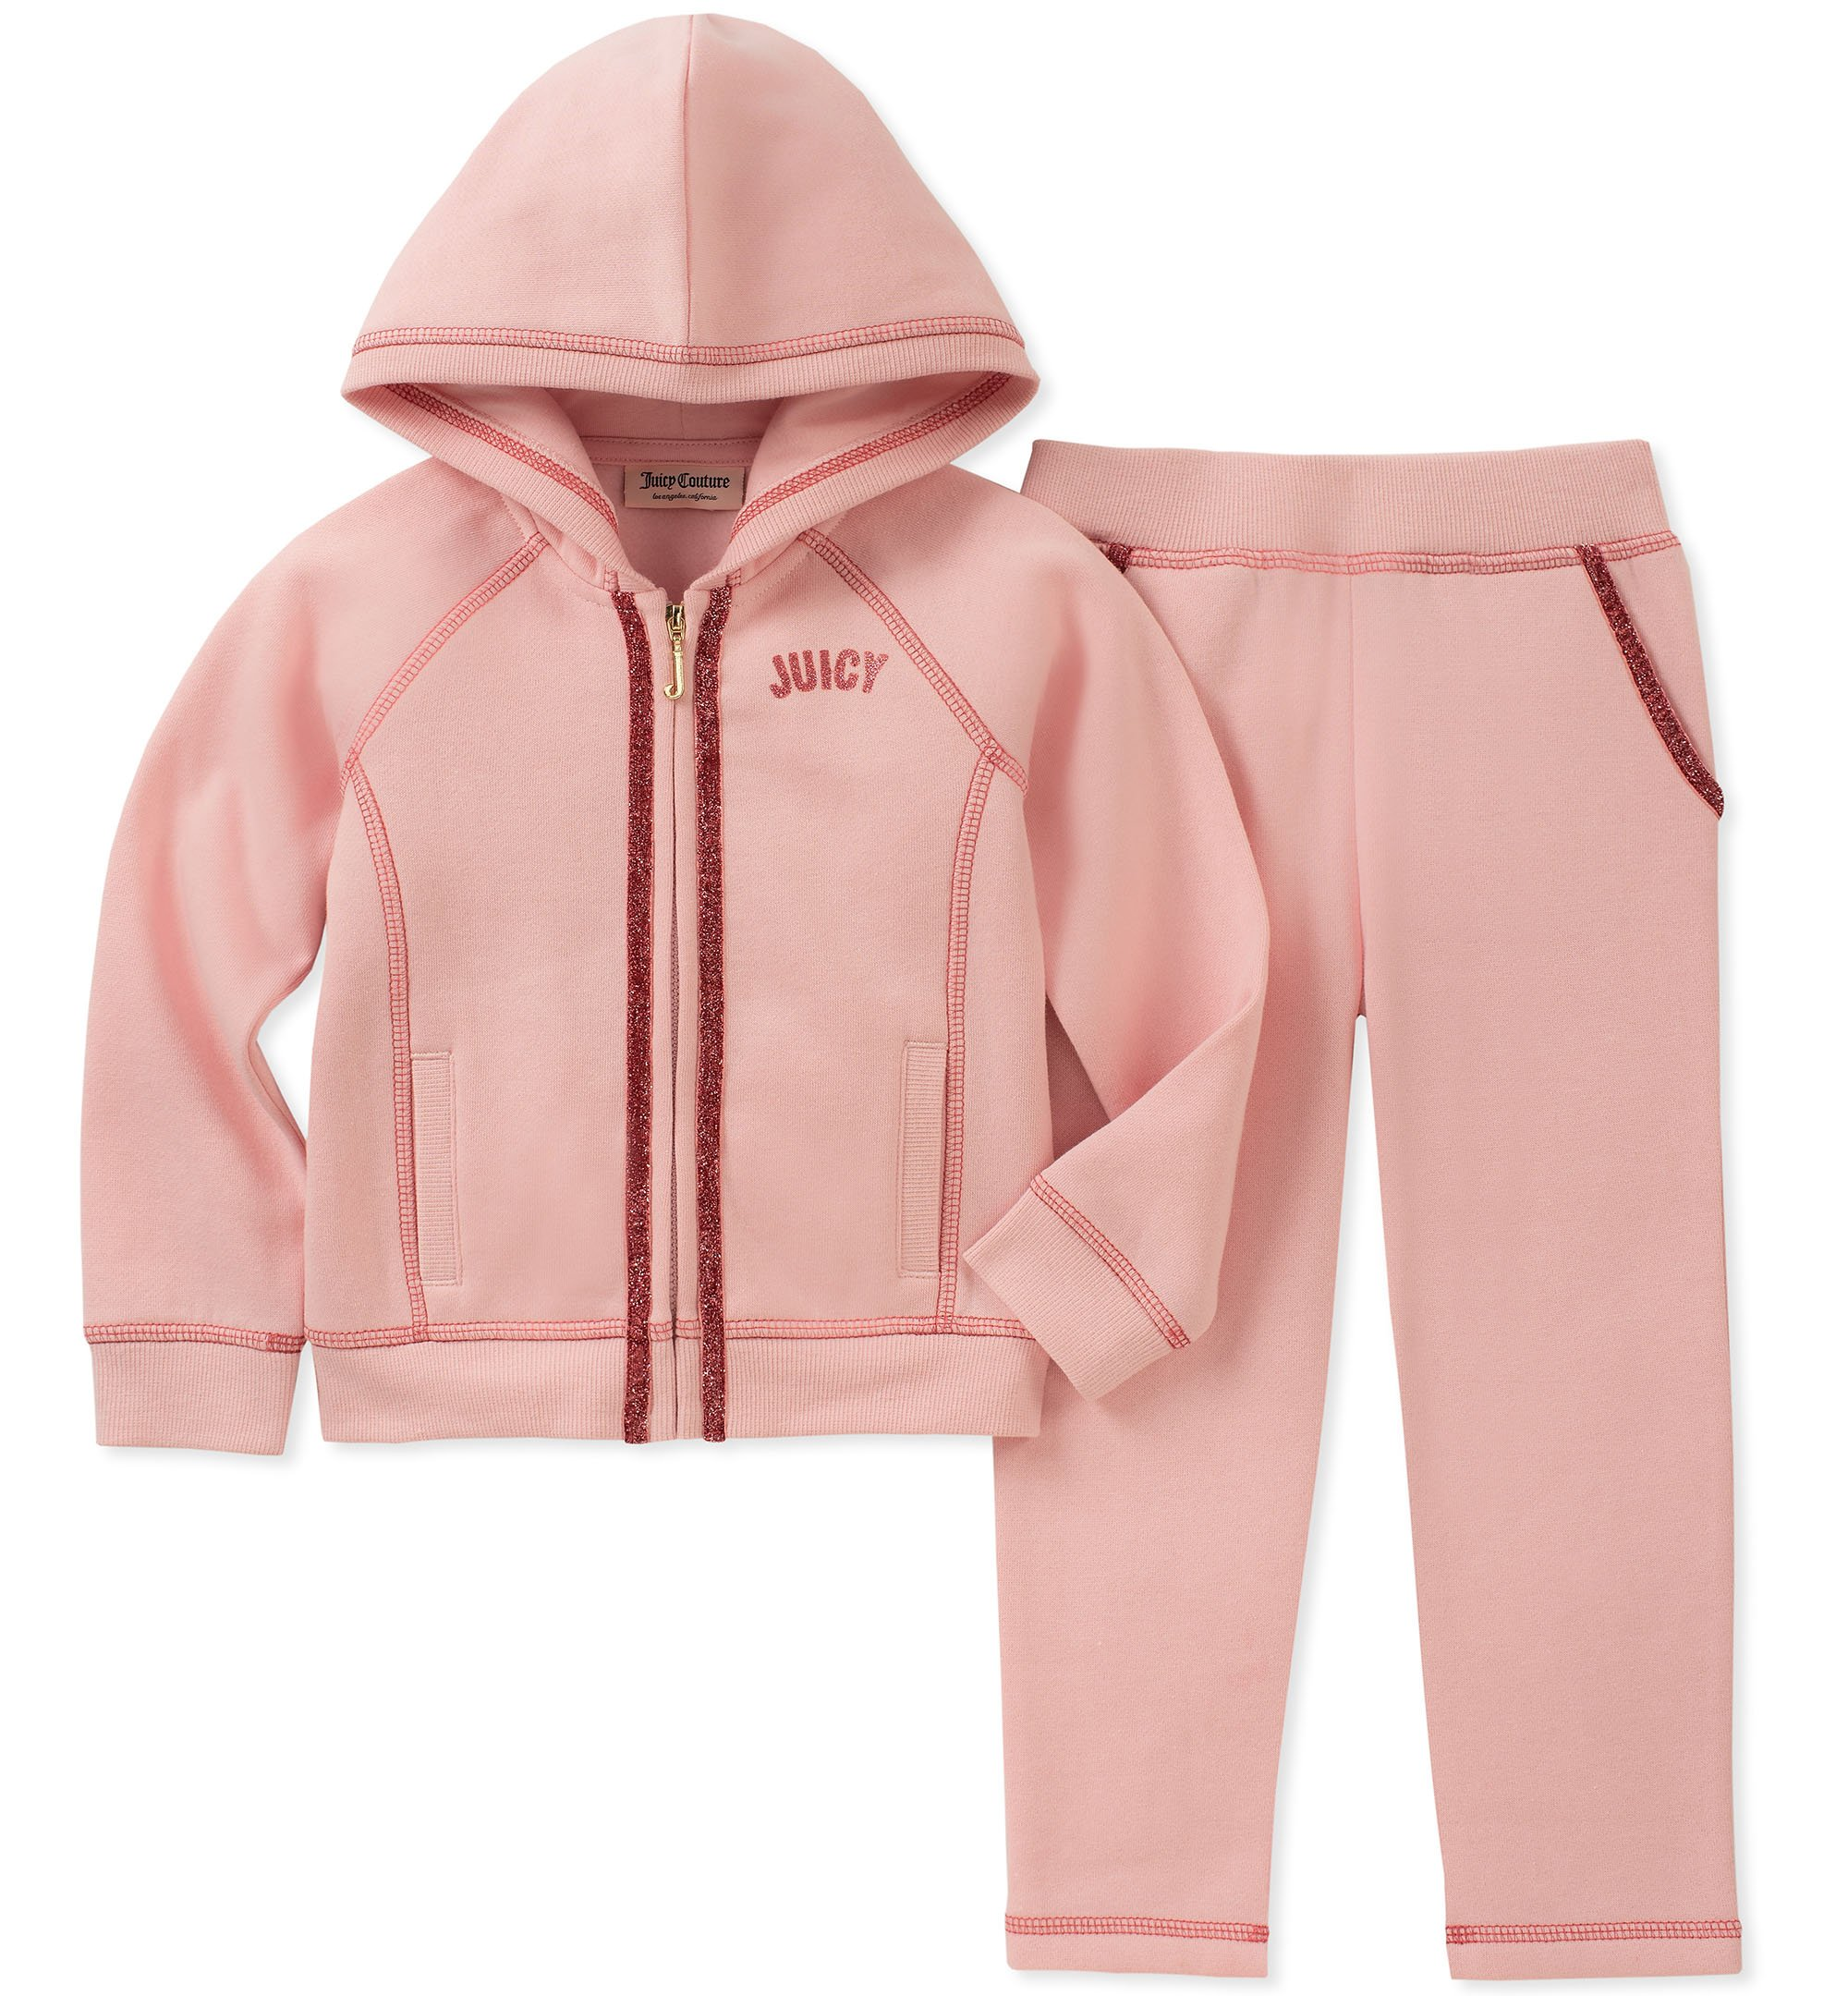 Juicy Couture Girls' Toddler 2 Pieces Jog Set, Pink, 3T